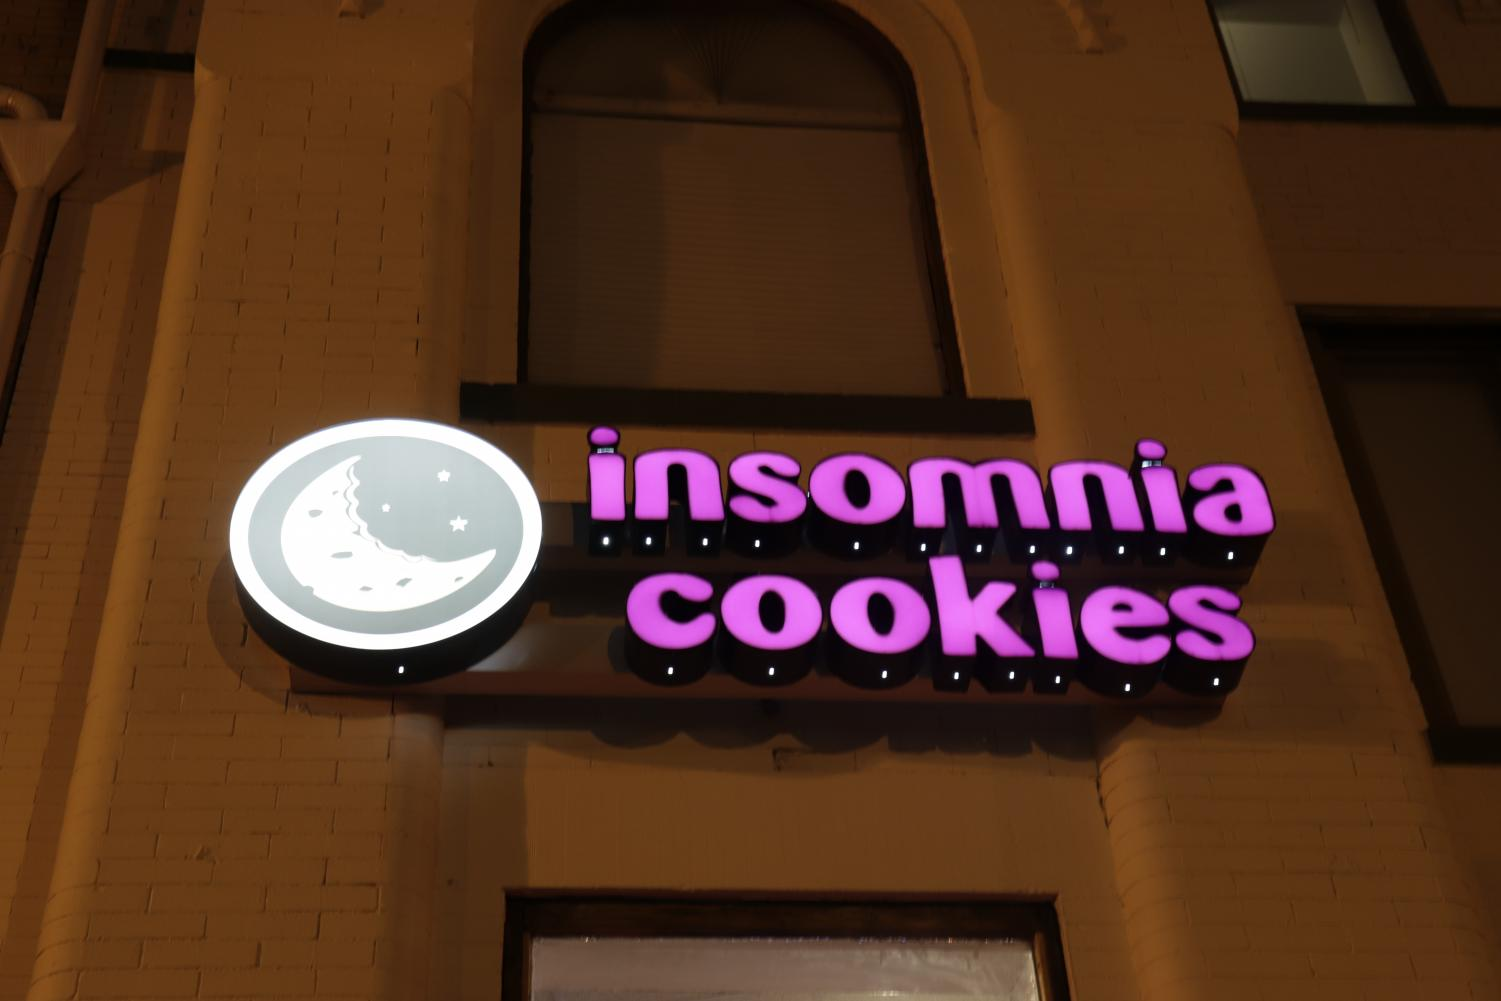 Insomnia Cookies has locations in Washington D.C. and Georgetown. They are well known for their delicious cookies and for staying open until 3:00 am in the morning.